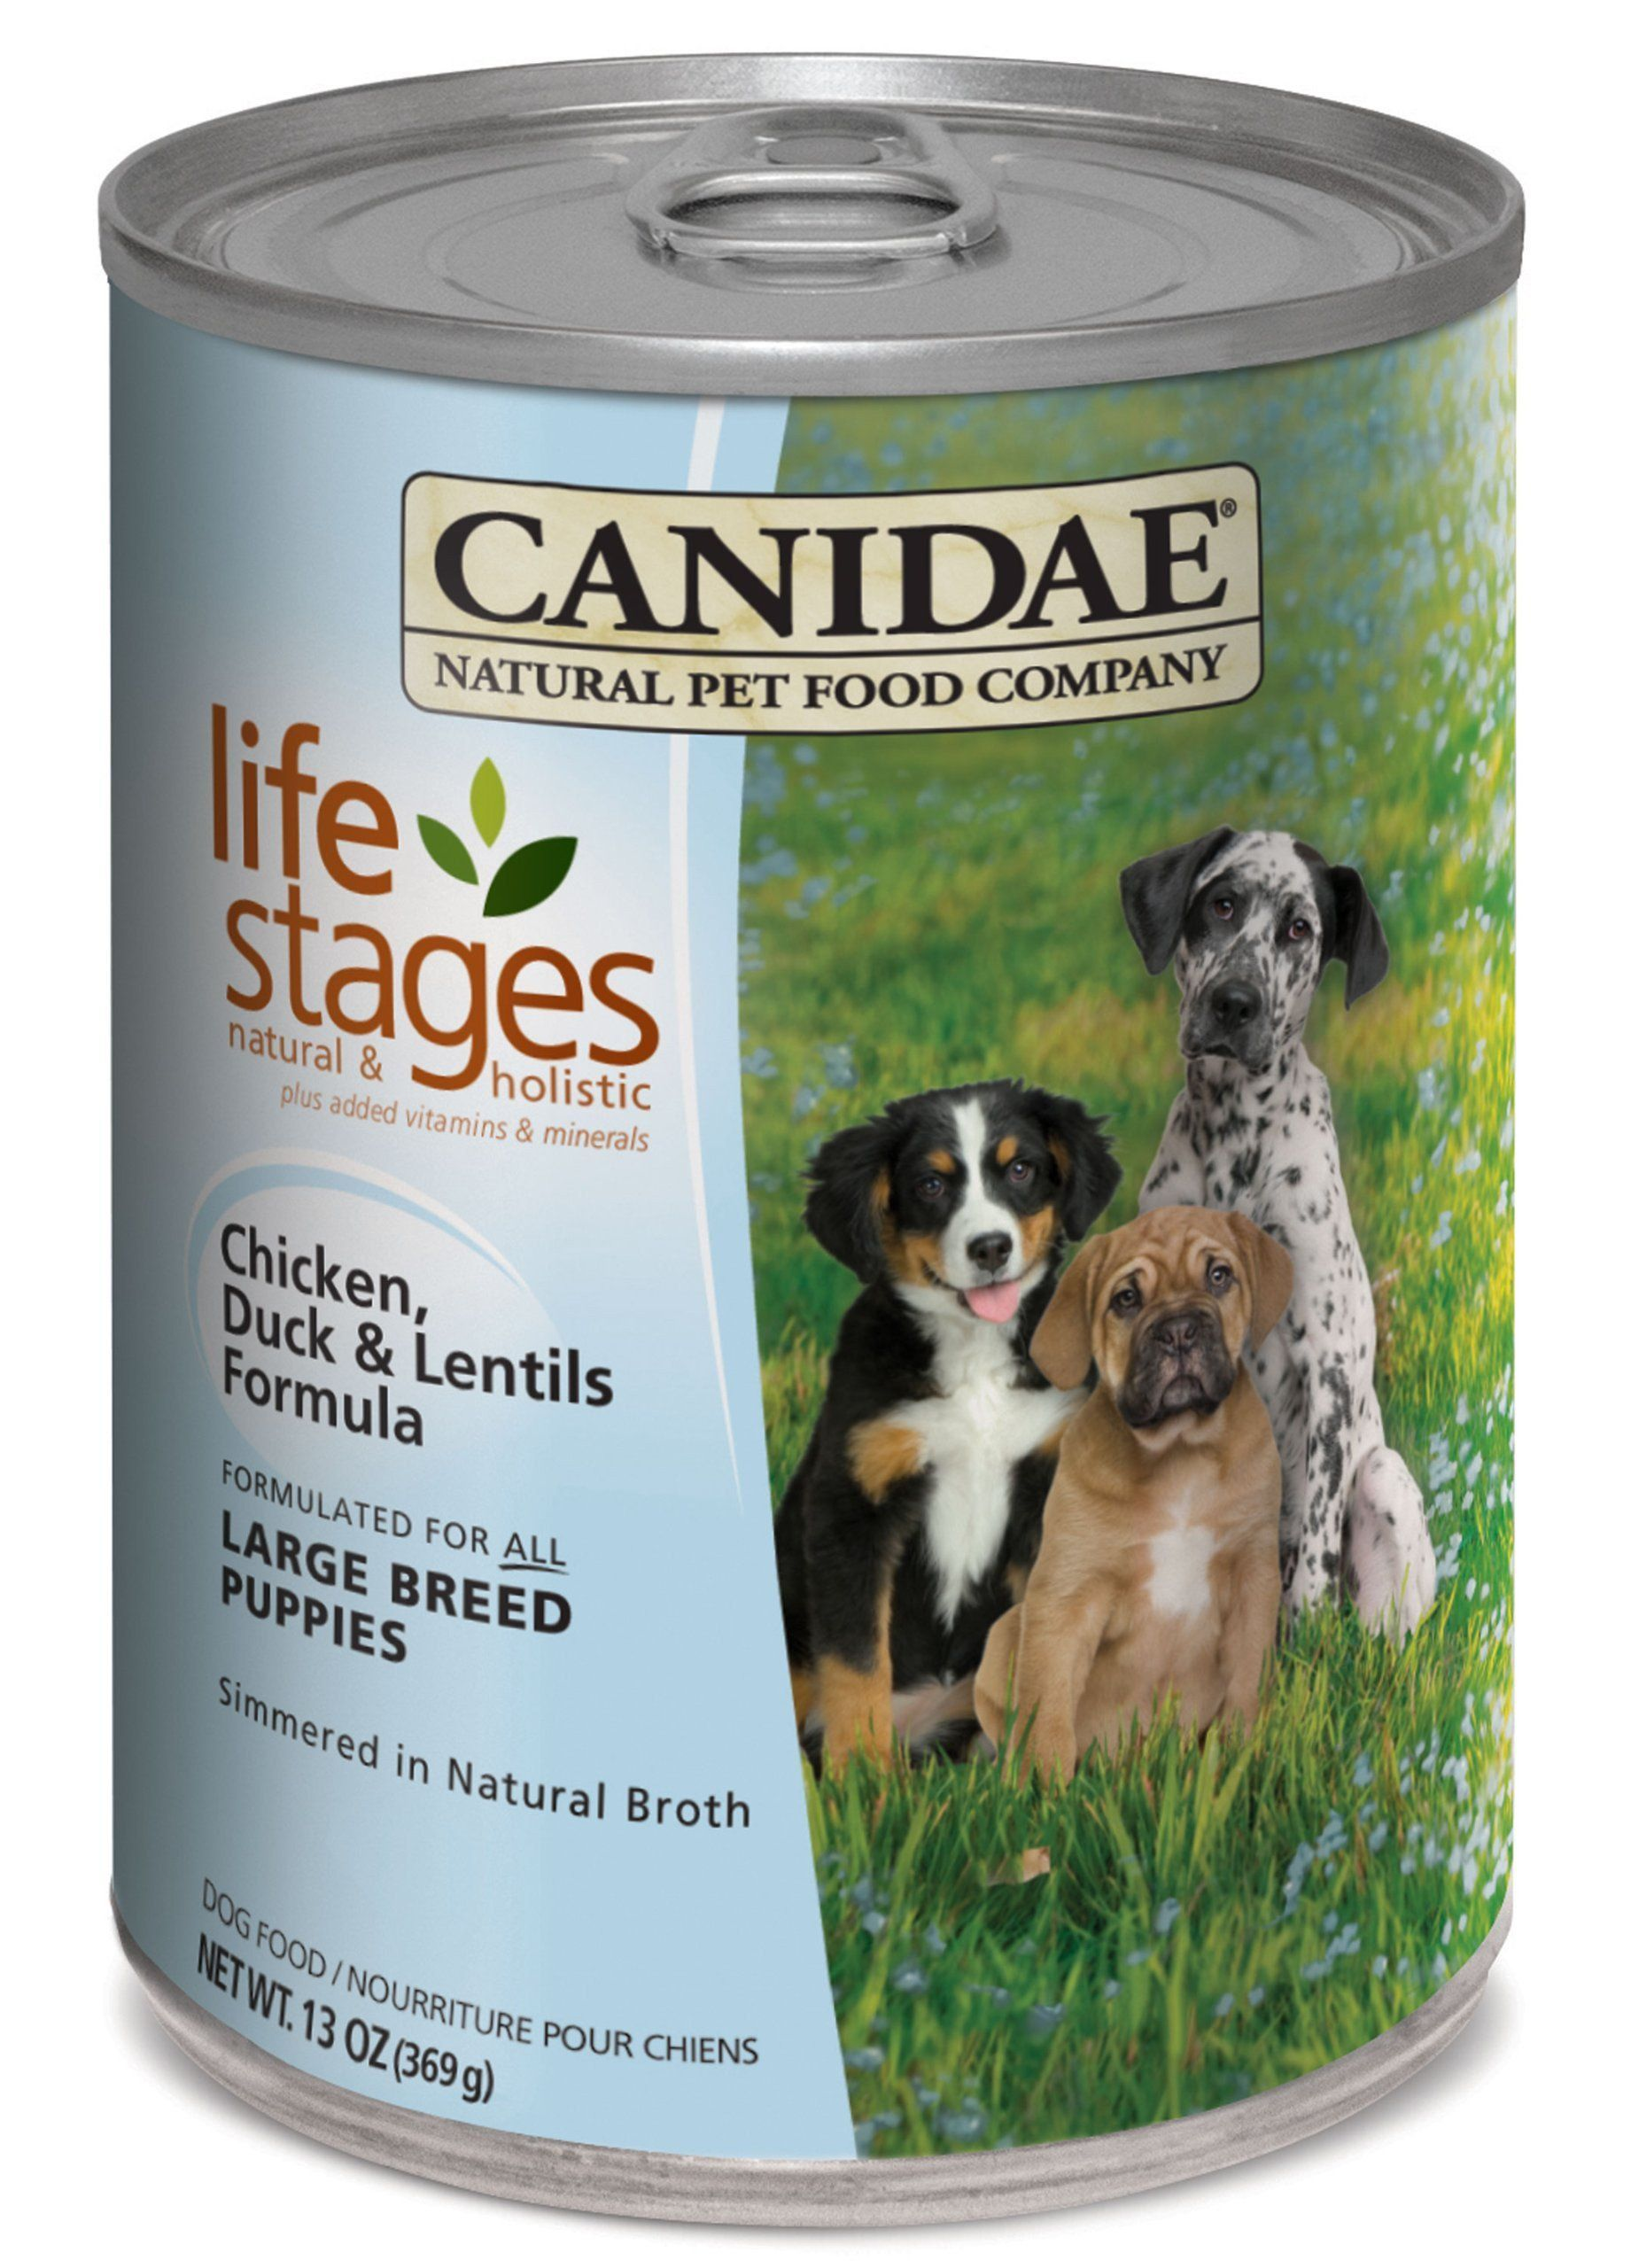 Canidaelife stages canned dog food for puppies adults